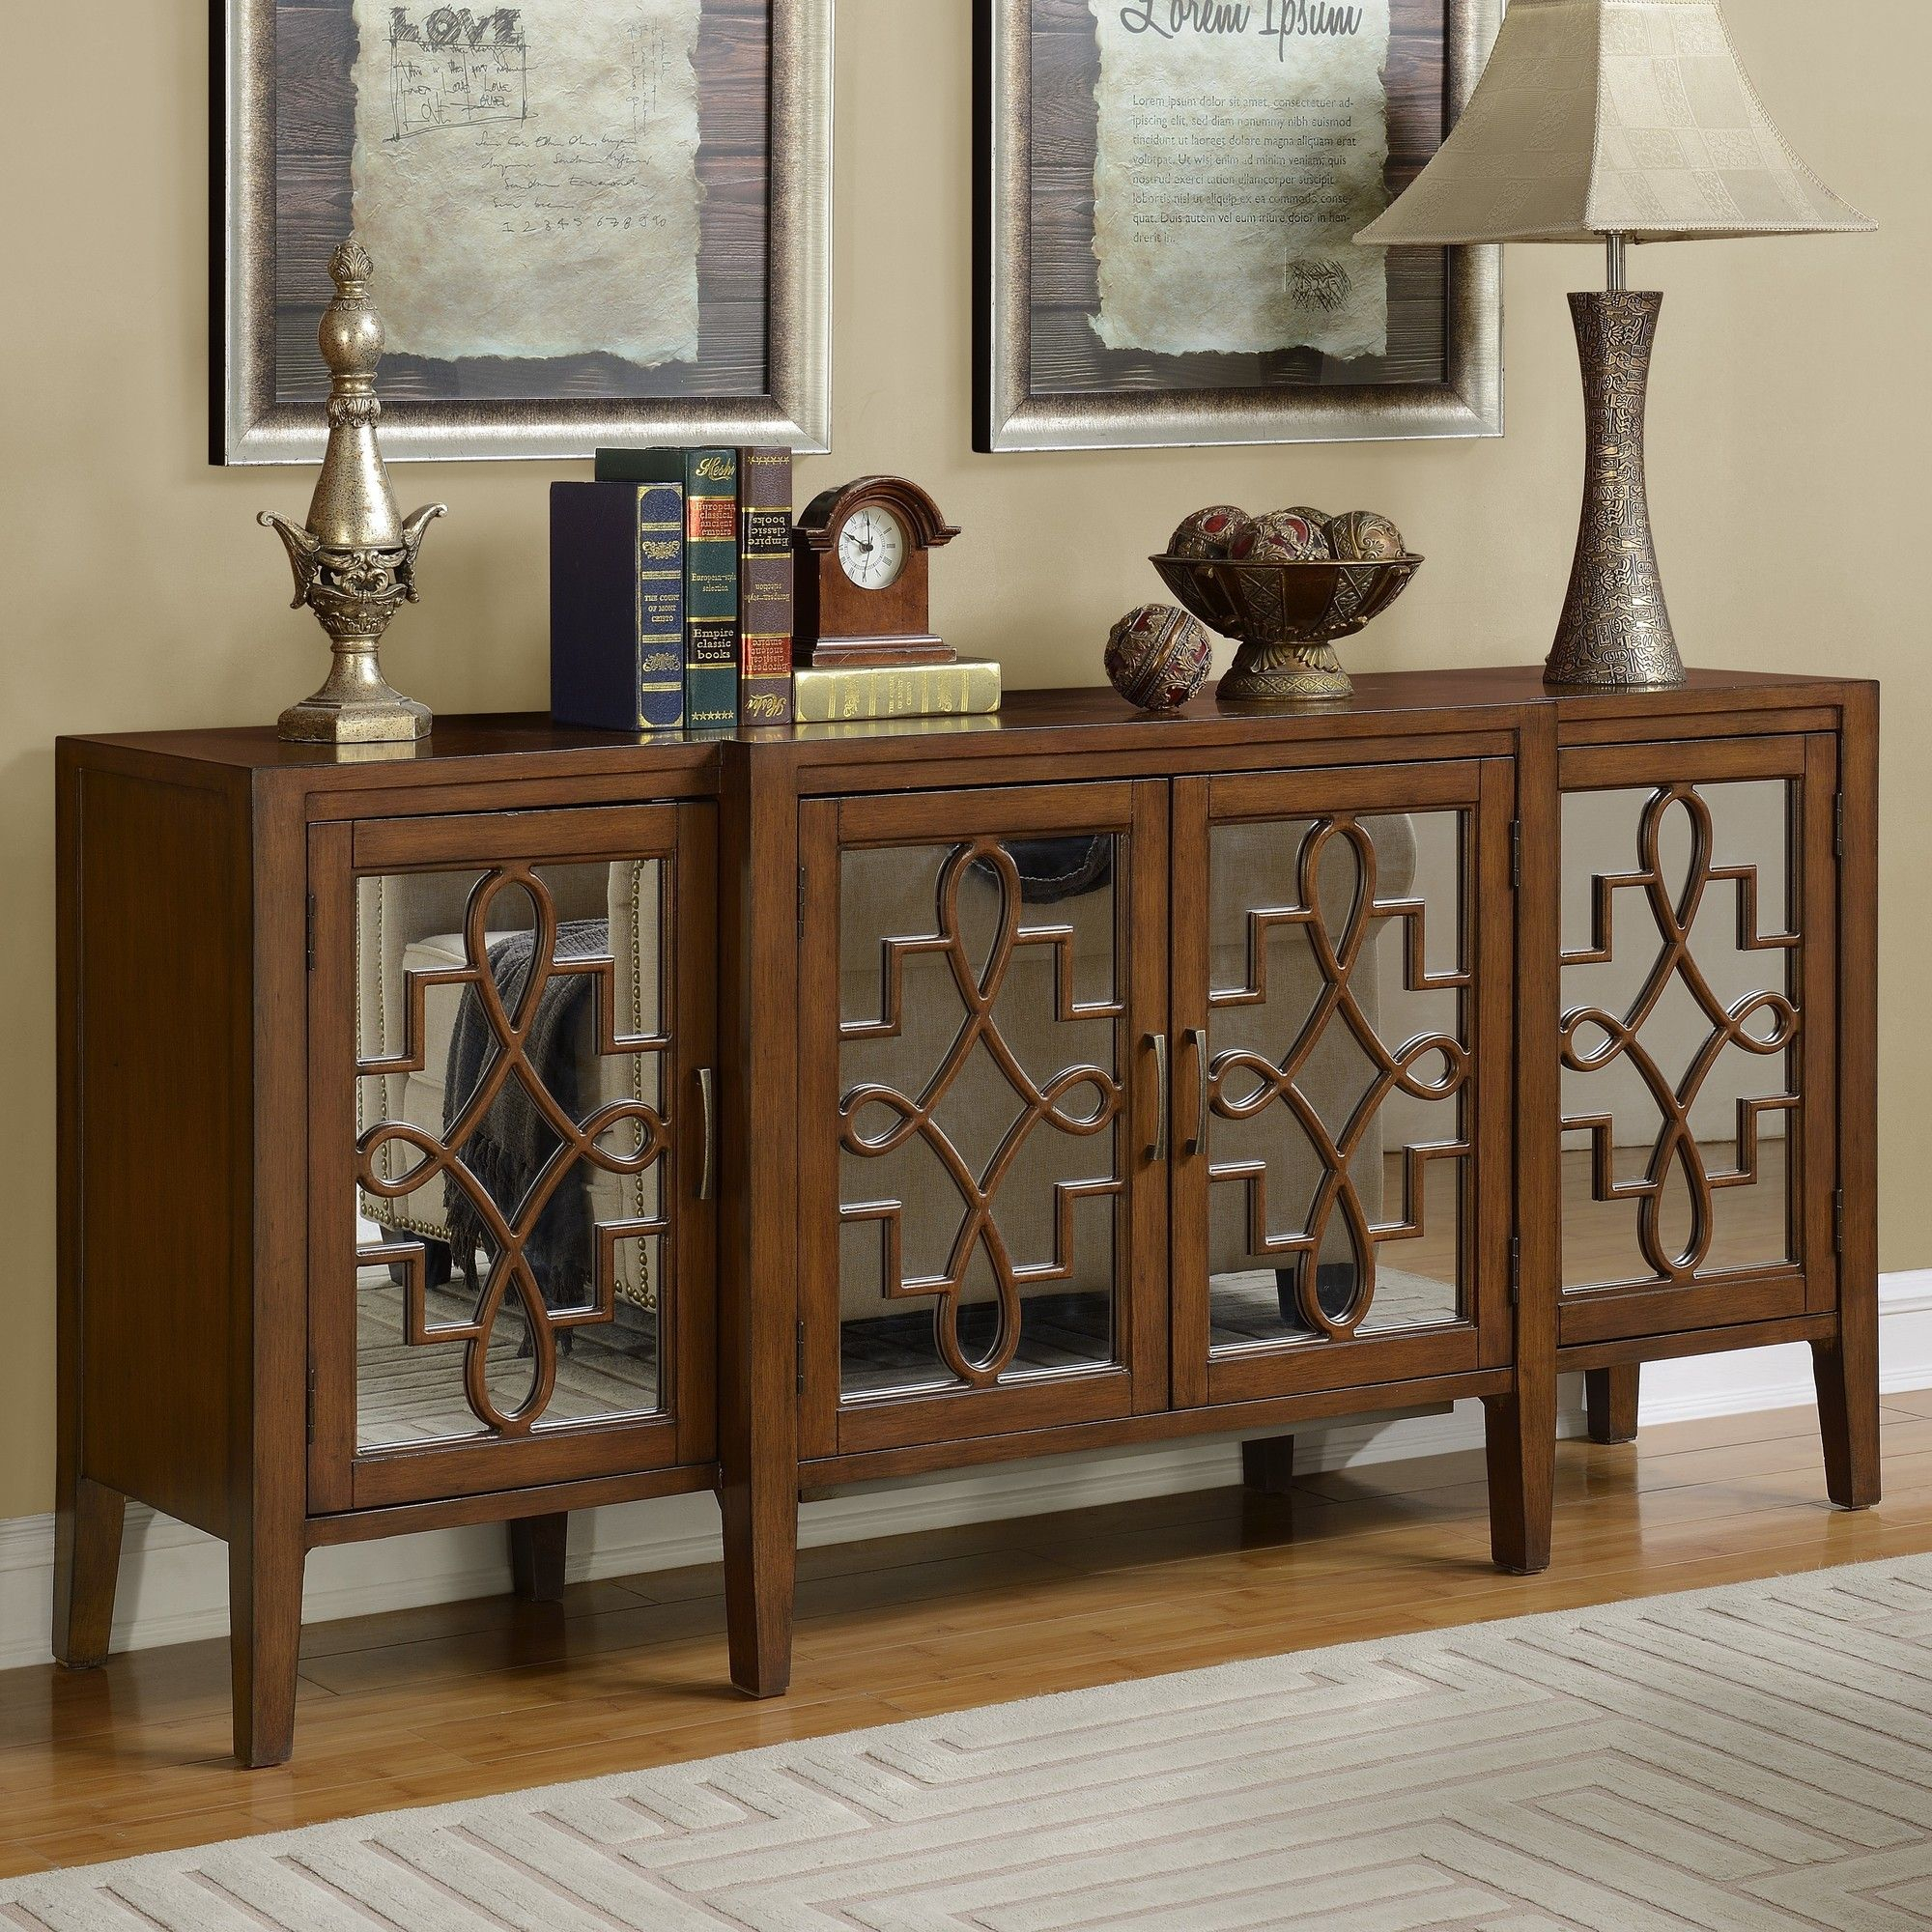 Manry Credenza | Products | Sideboard, Sideboard Buffet For Lowrey Credenzas (View 14 of 30)